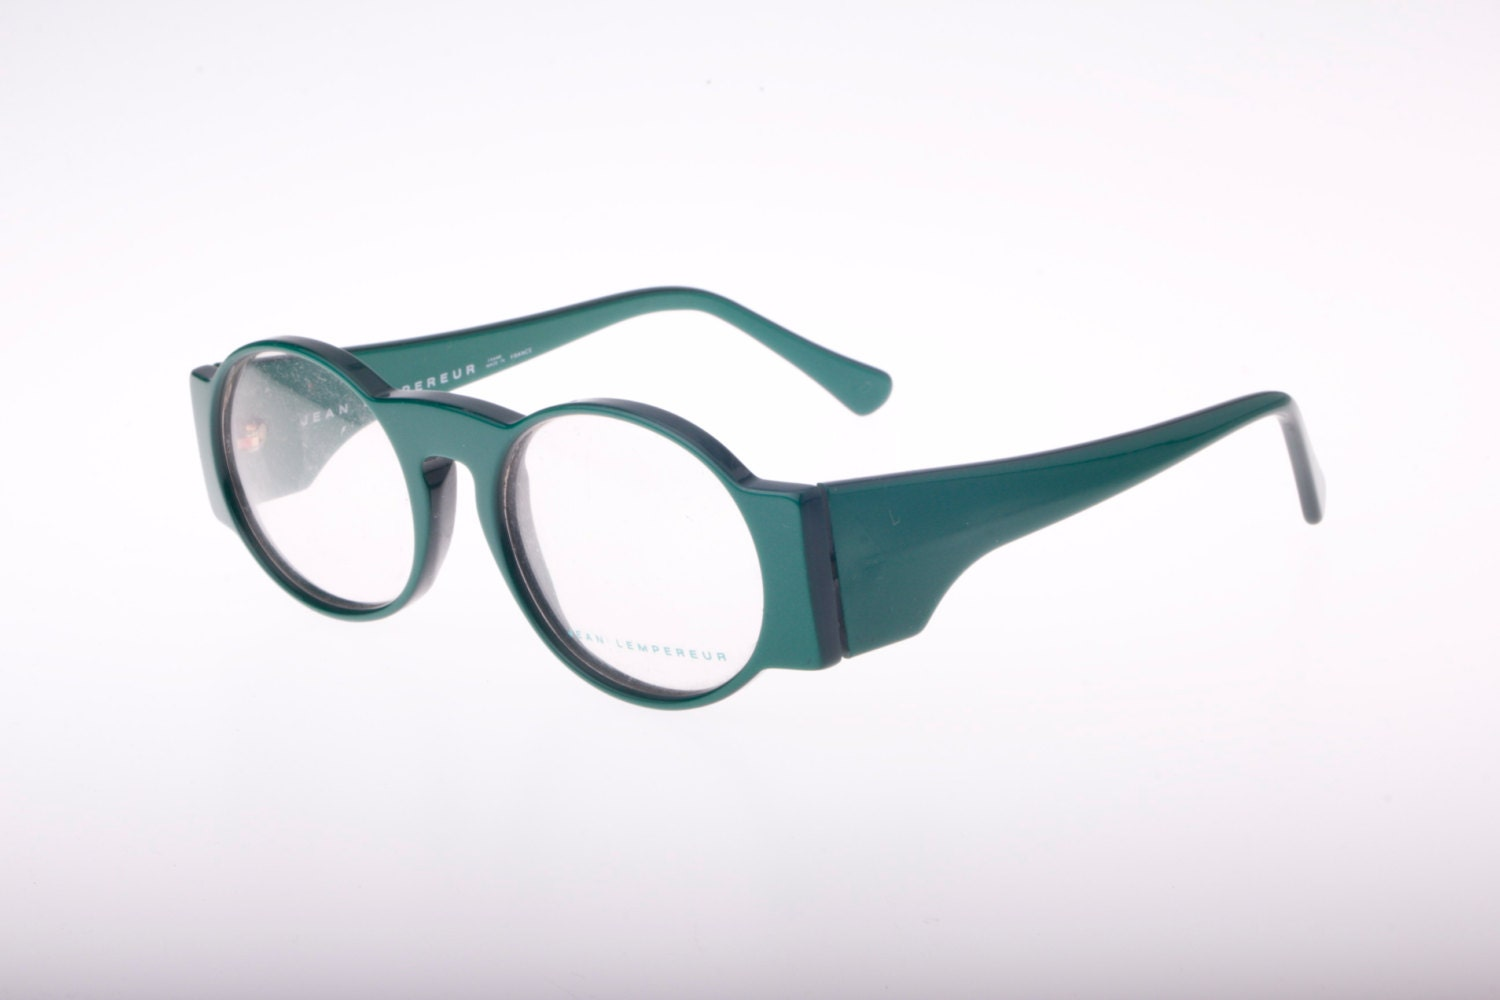 Quirky Eyeglass Frames : Super hip and unusual Jean Lemperer round oval green ...